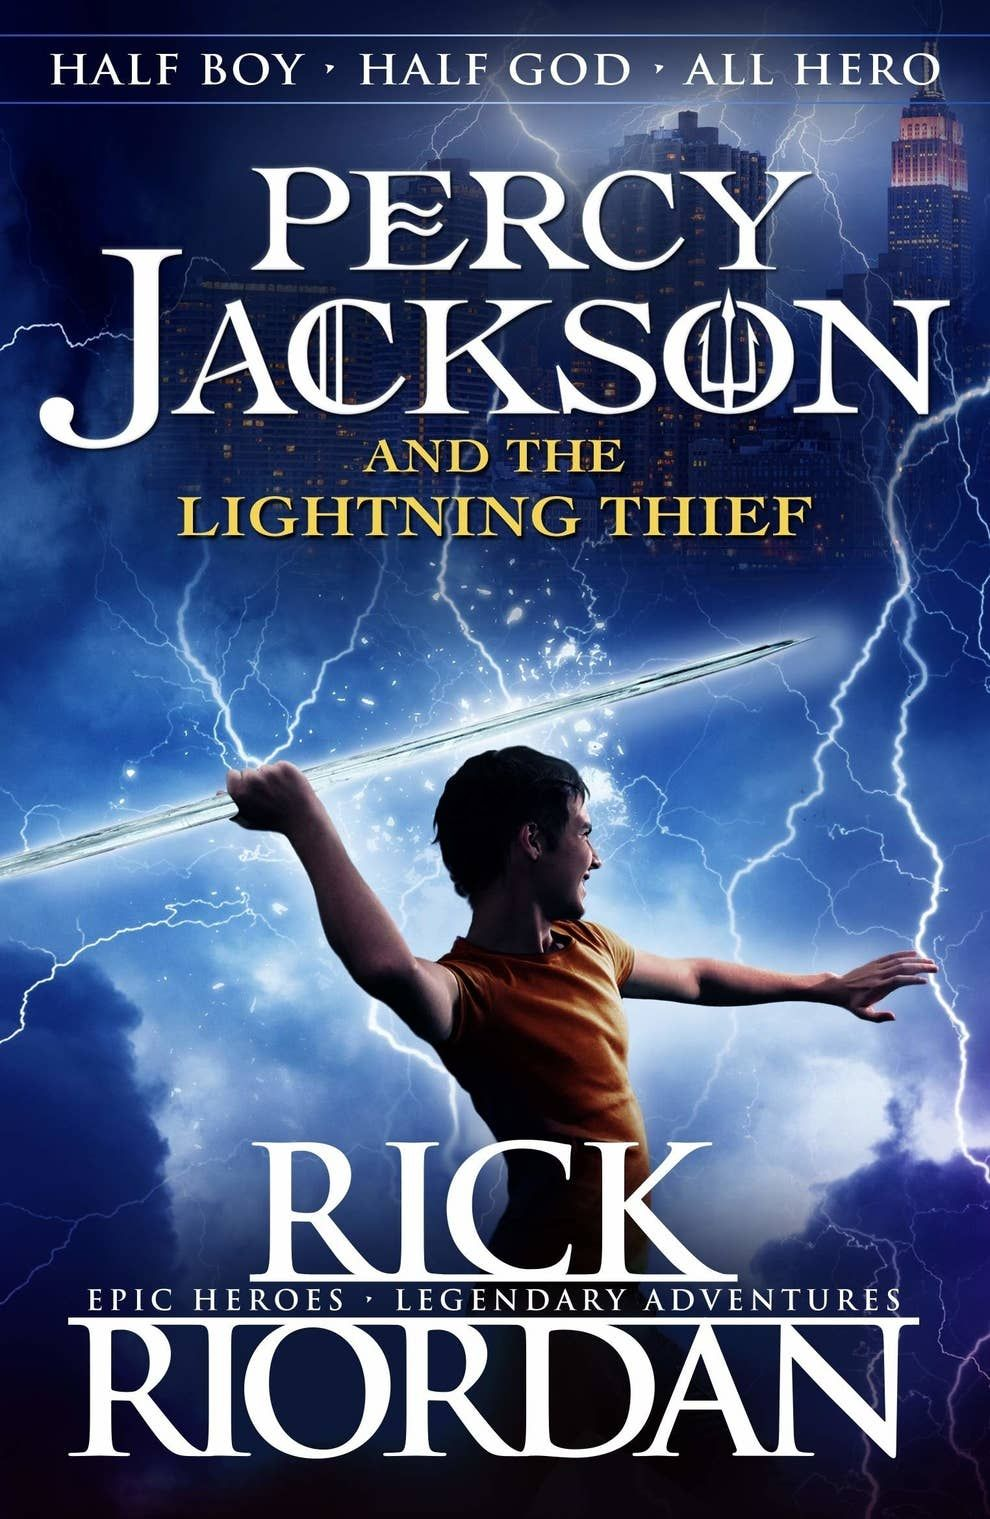 17 Fantastic Books To Help Fill The Harry Potter Void In Your Life The Lightning Thief Book The Lightning Thief Percy Jackson Books